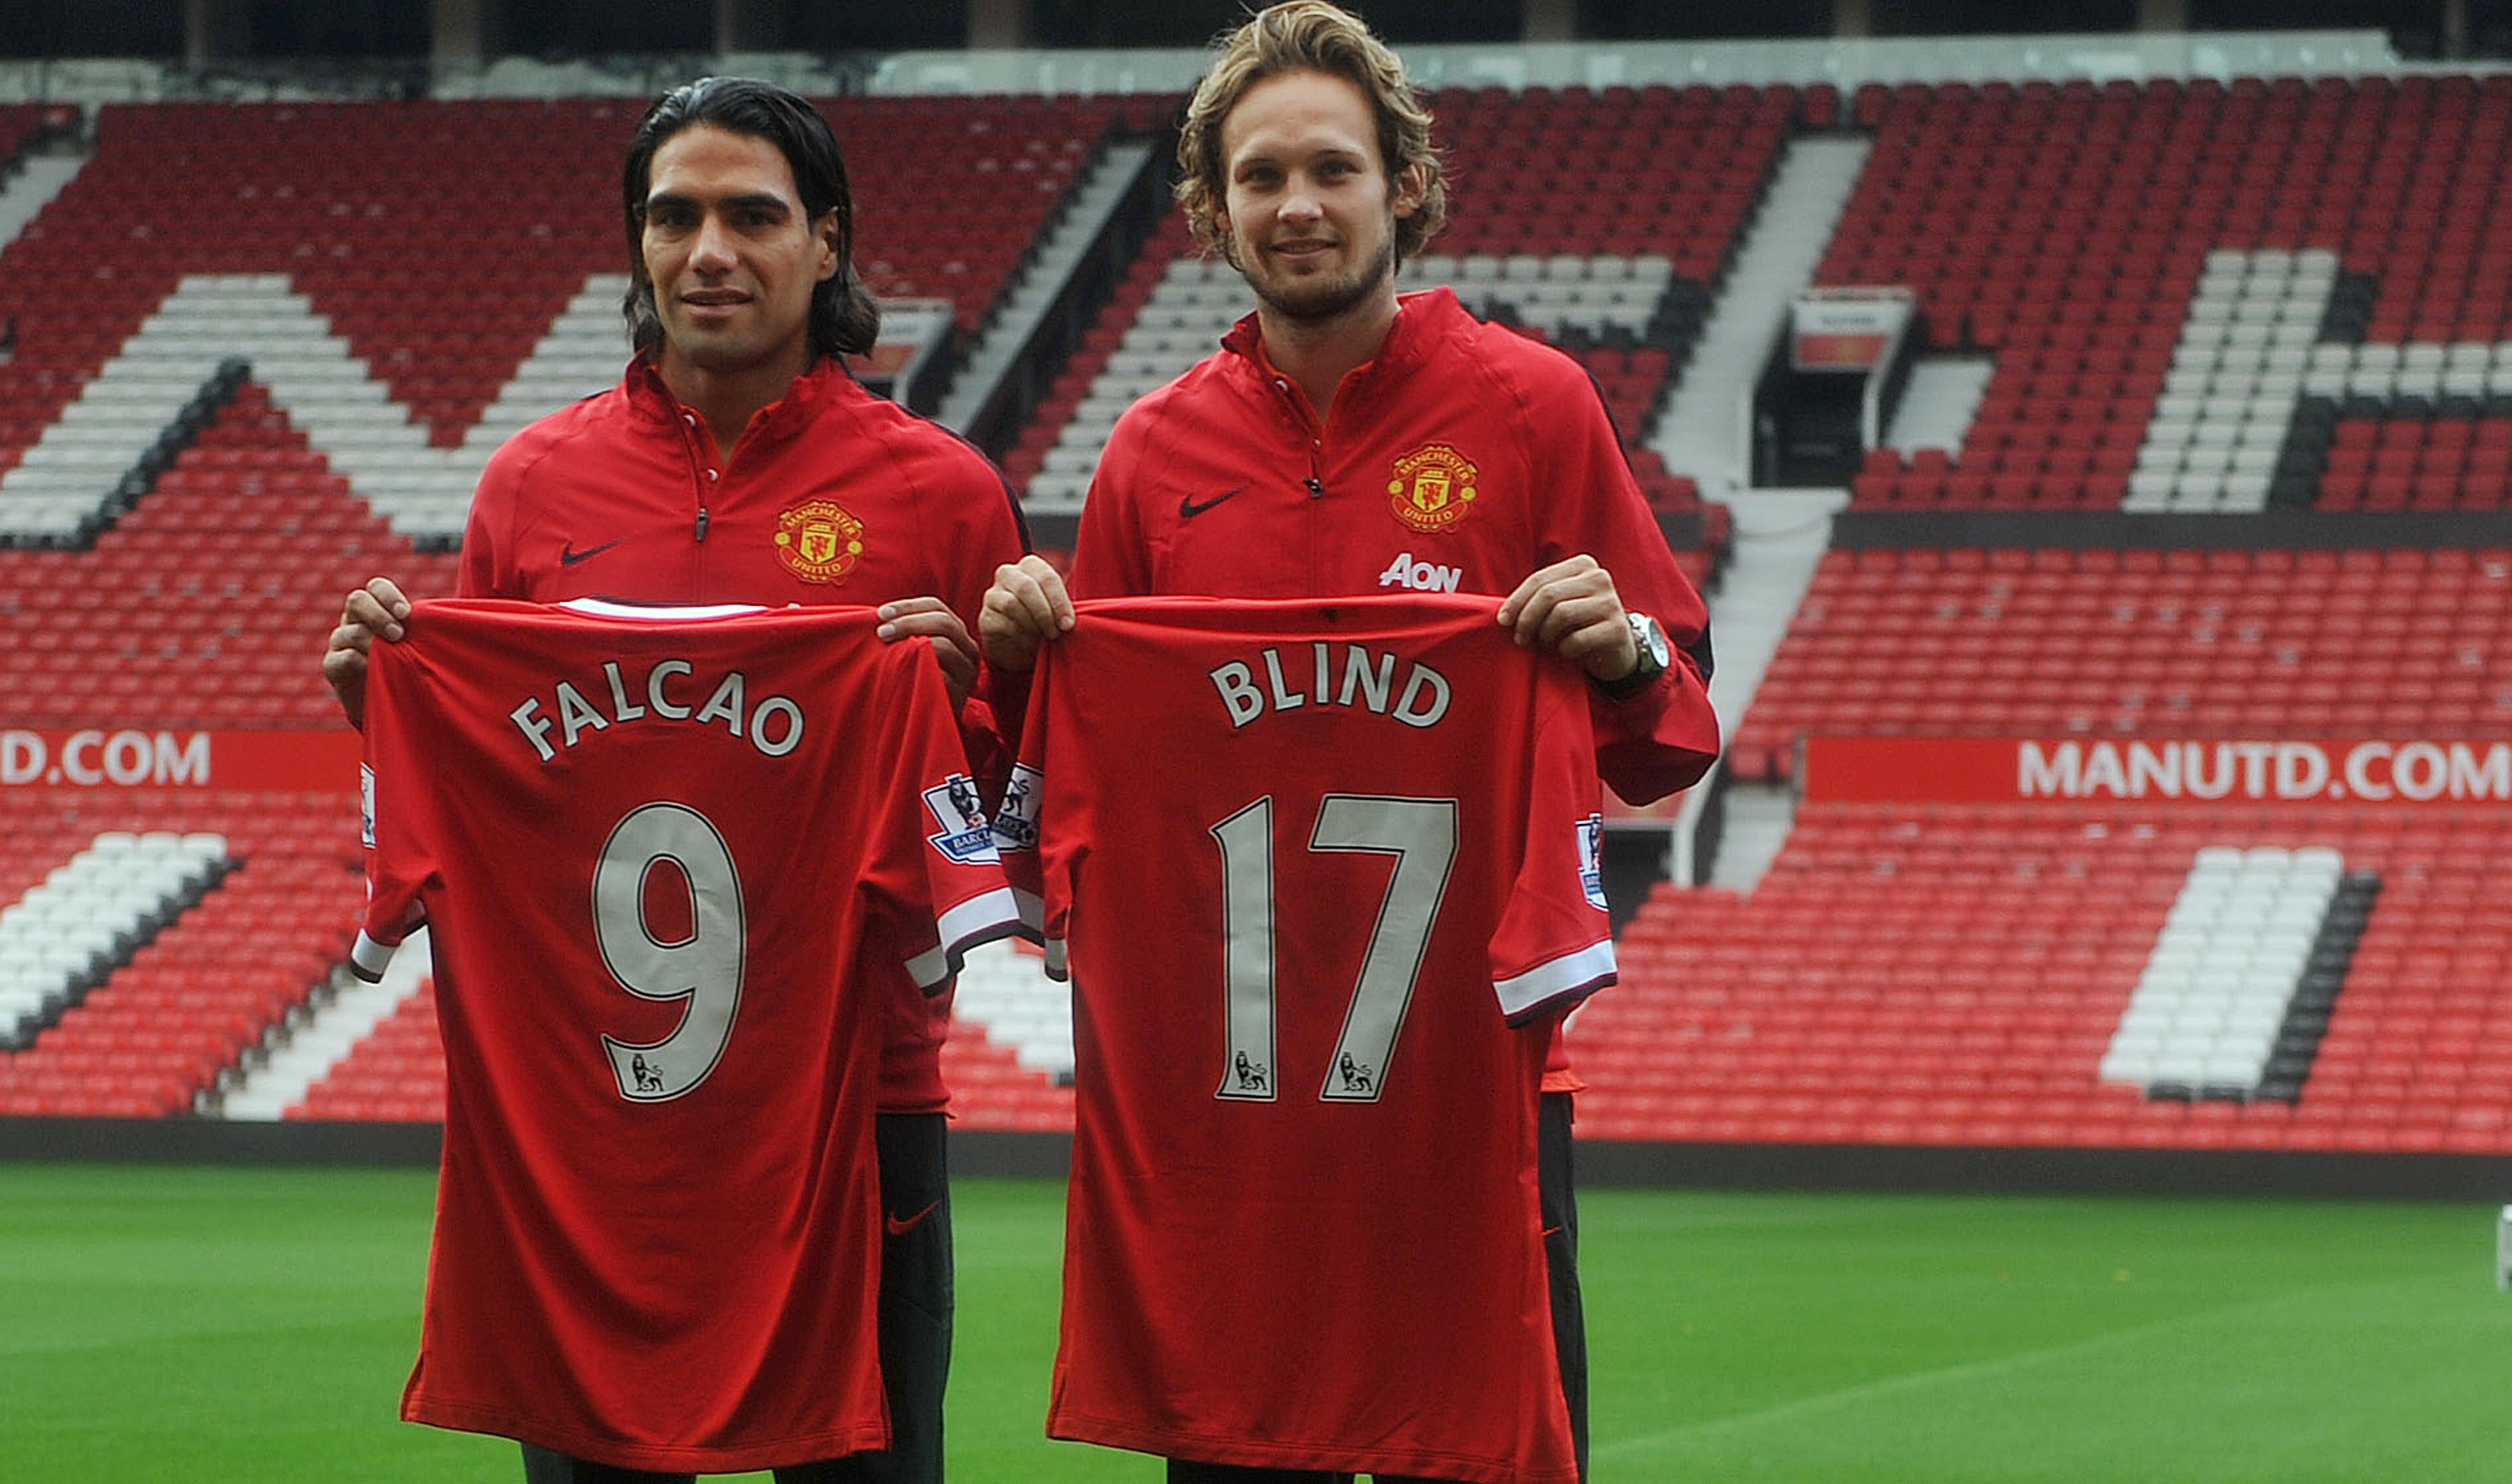 Manchester United signing Falco and Blind